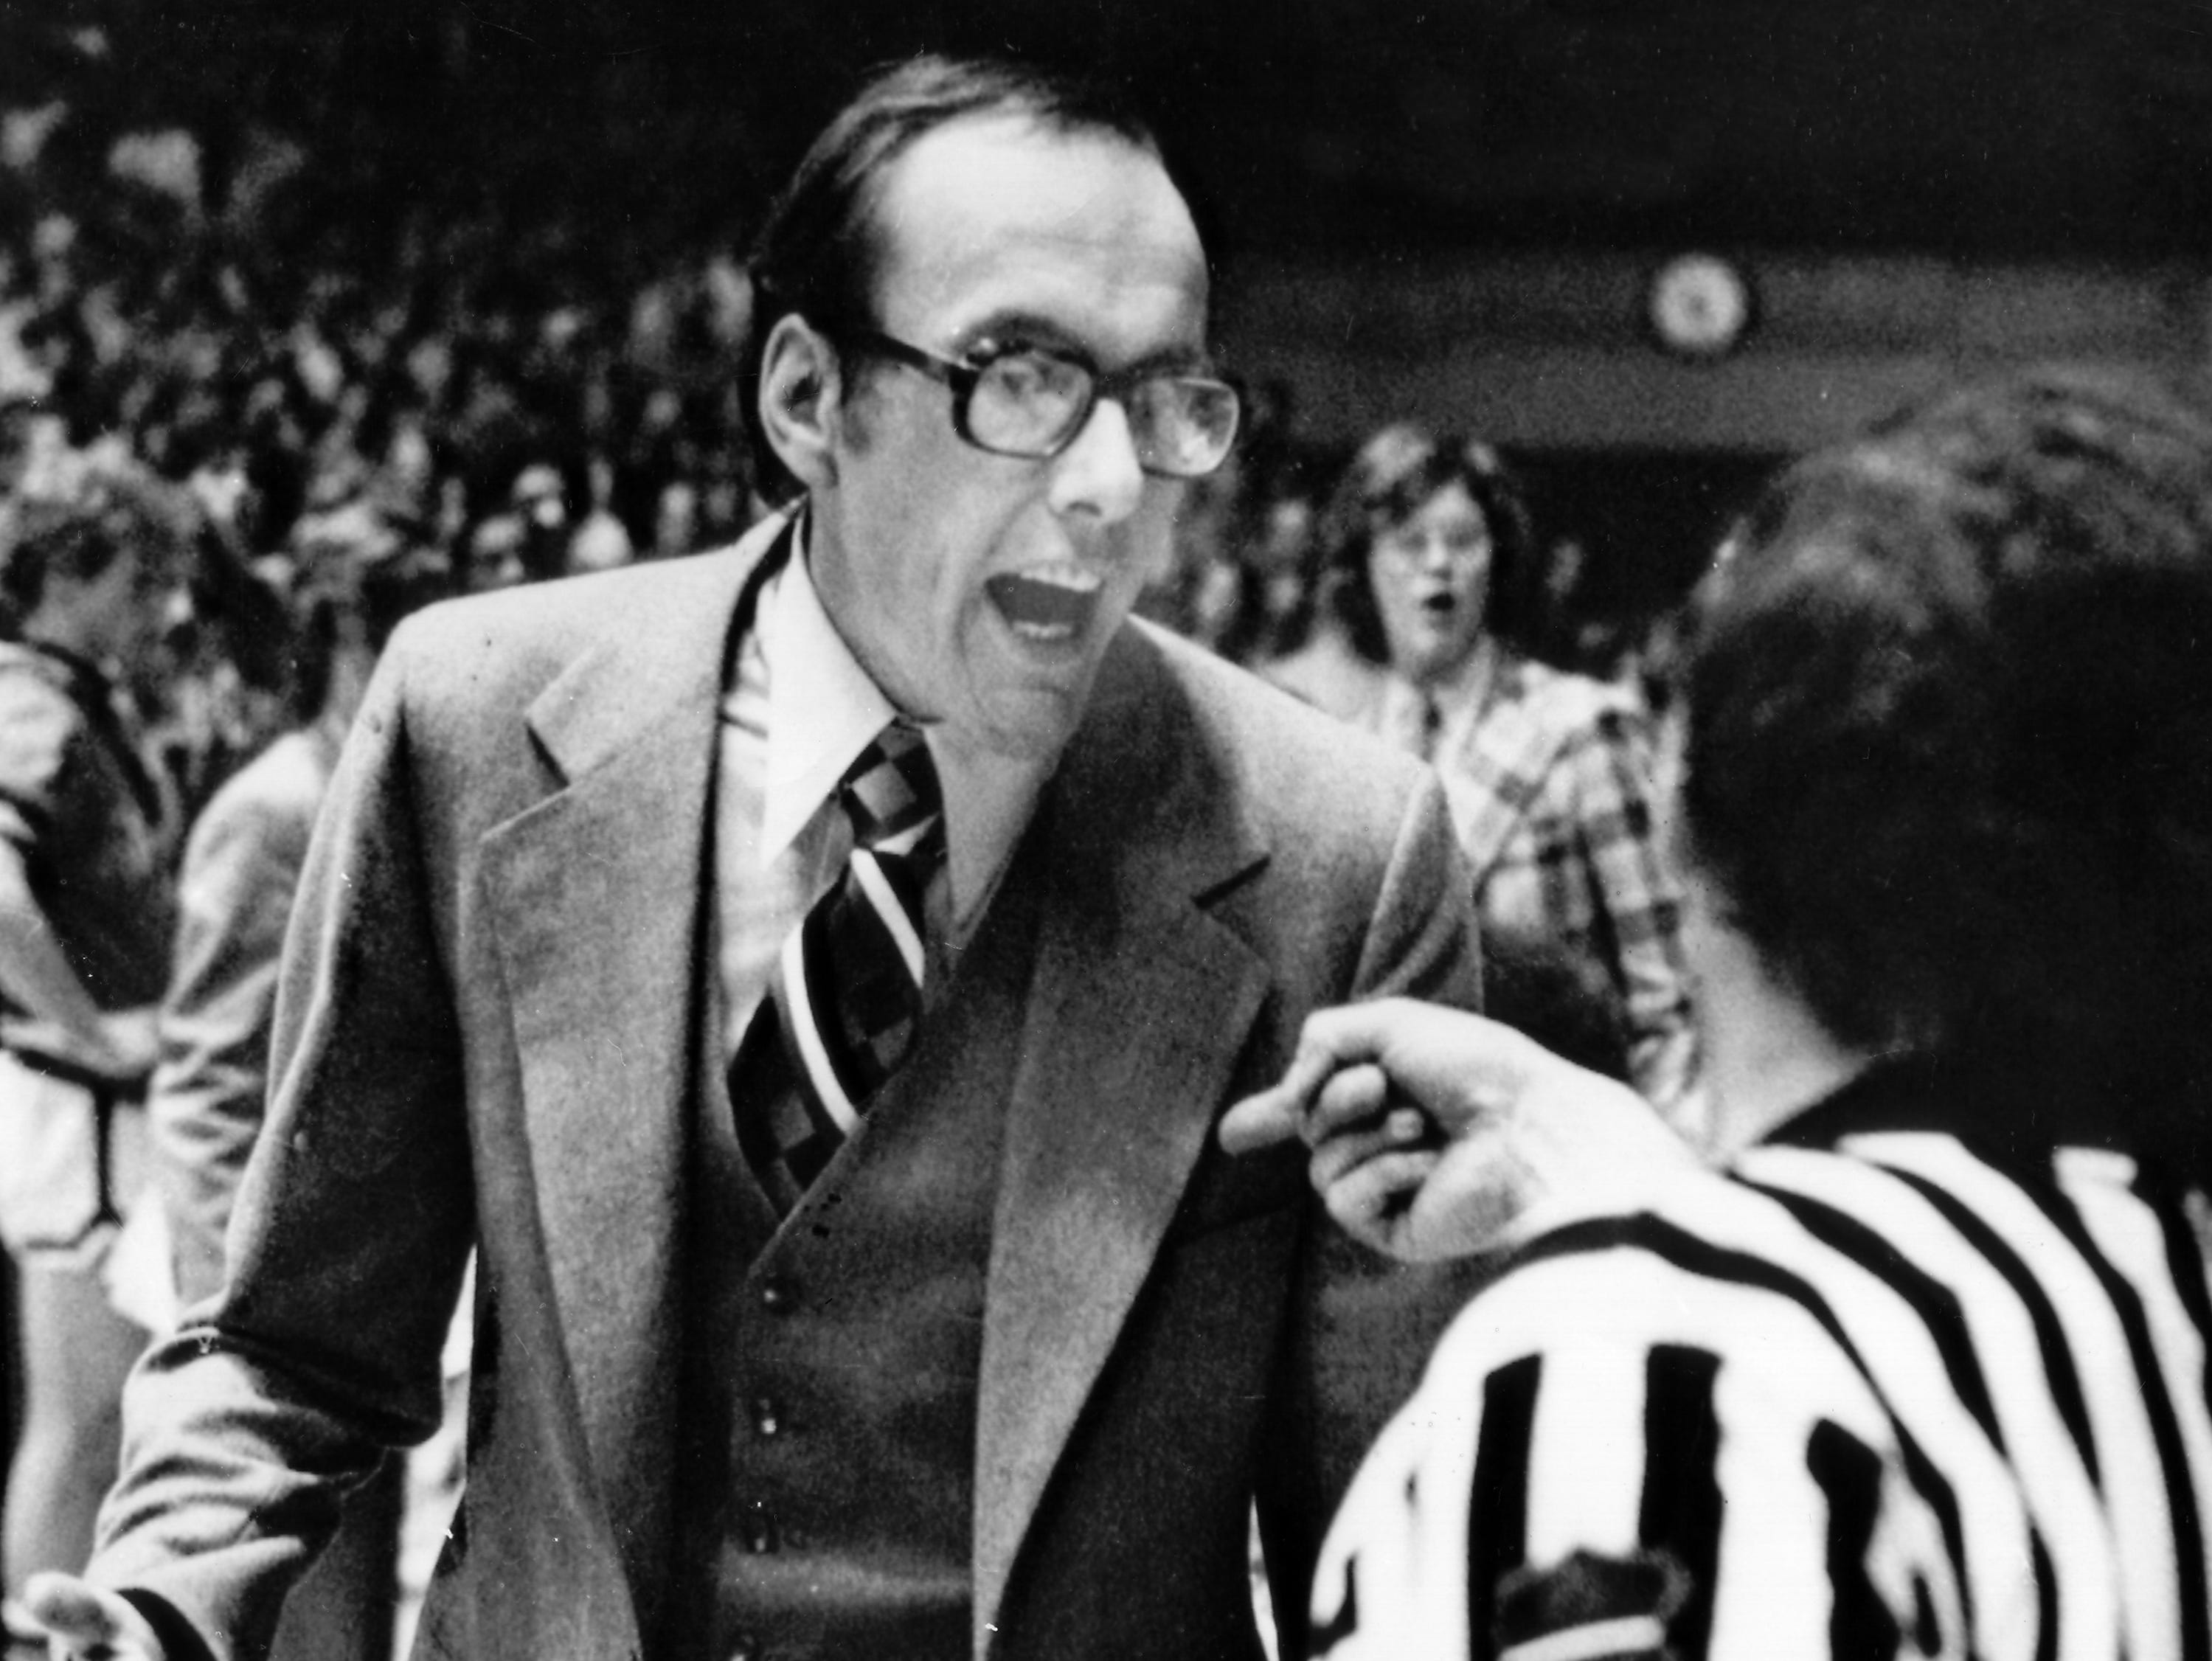 1977: Syracuse University basketball coach Jim Boeheim has his team on the verge of its winning est season ever in his first year on the job, March 4, 1977. (AP Photo)